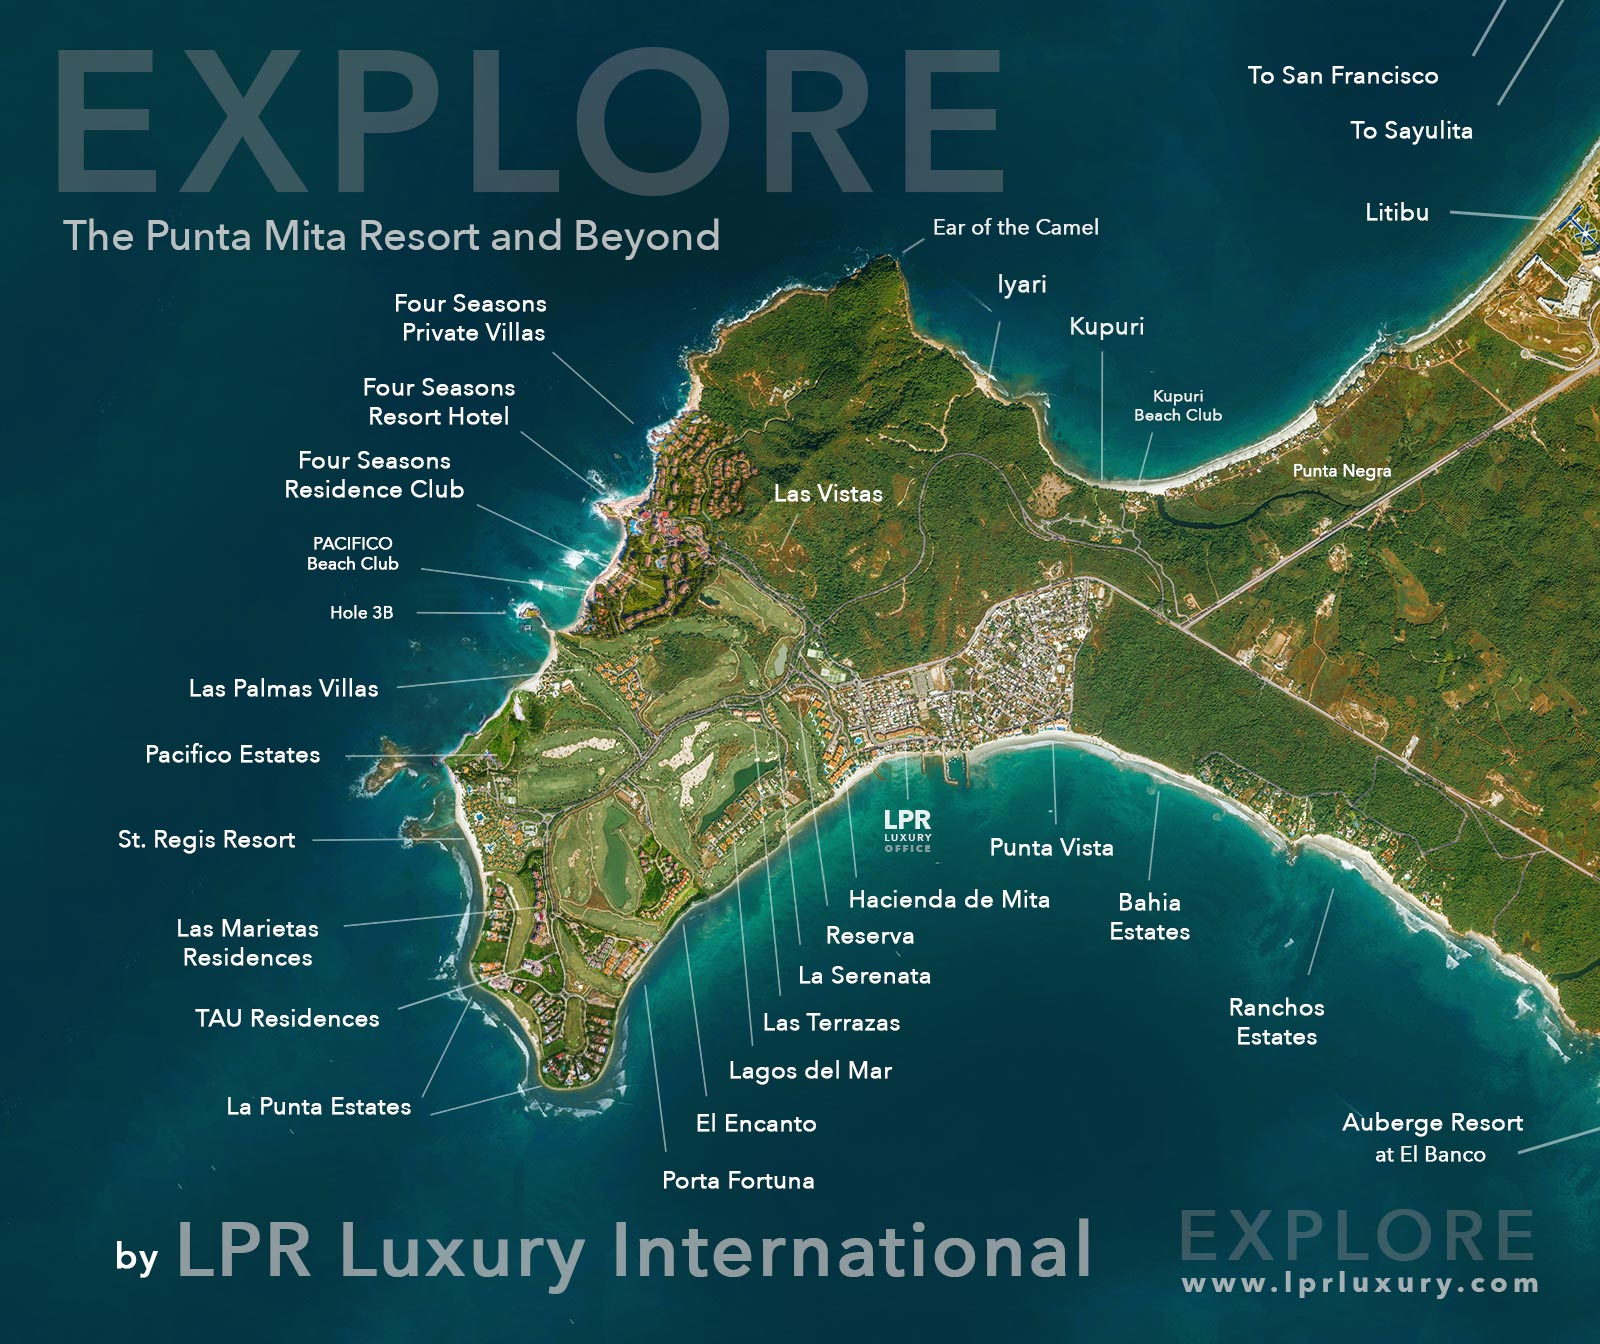 Map of Punta Mita - Explore the Punta Mita Resort and Beyond - Riviera Nayarit, Mexico